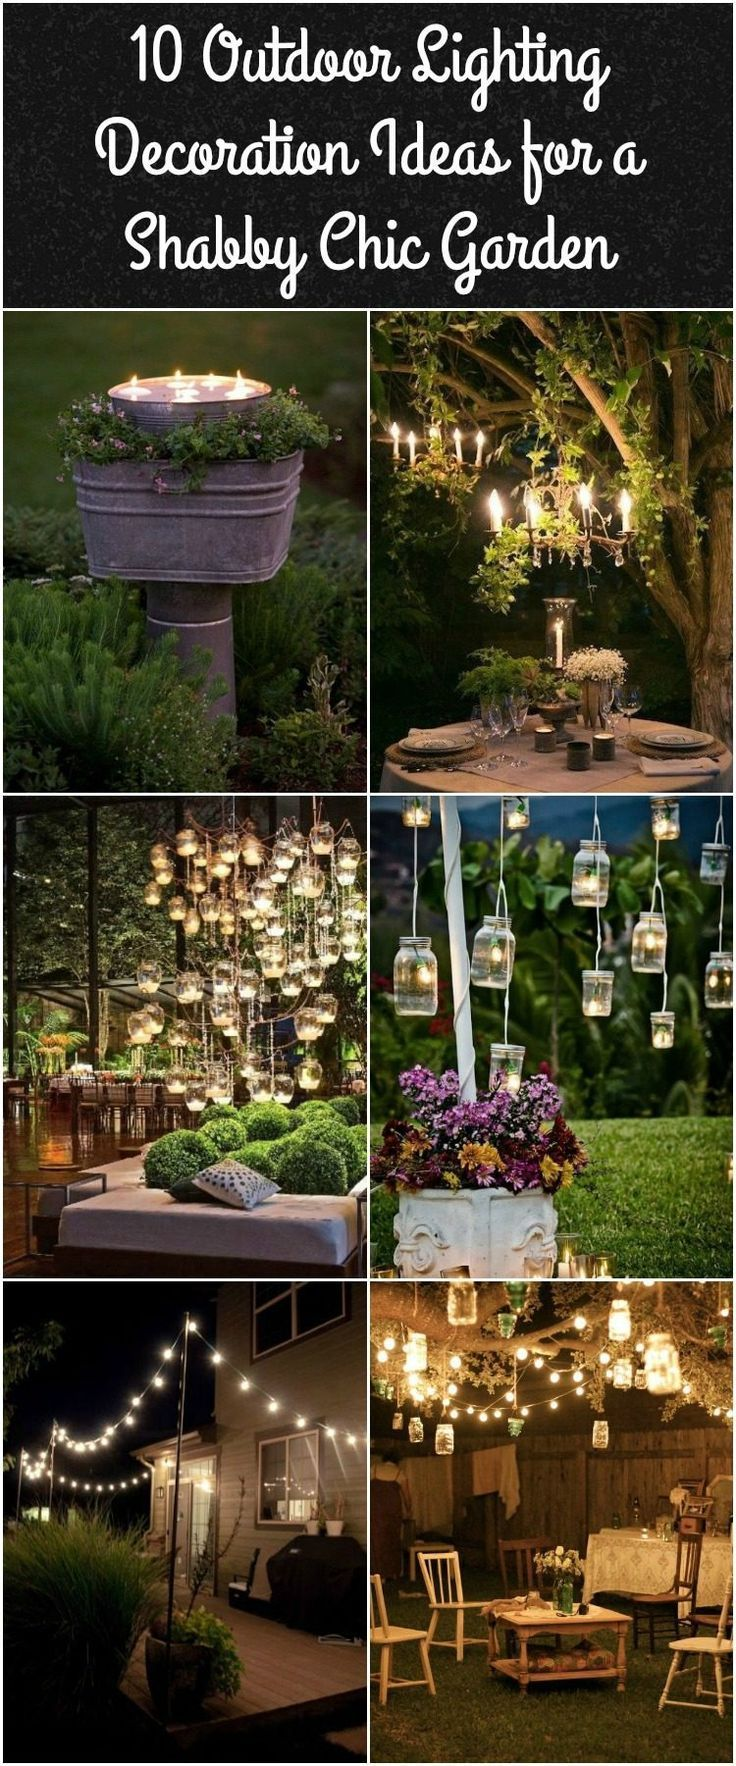 10 Outdoor Lighting Ideas for a Shabby